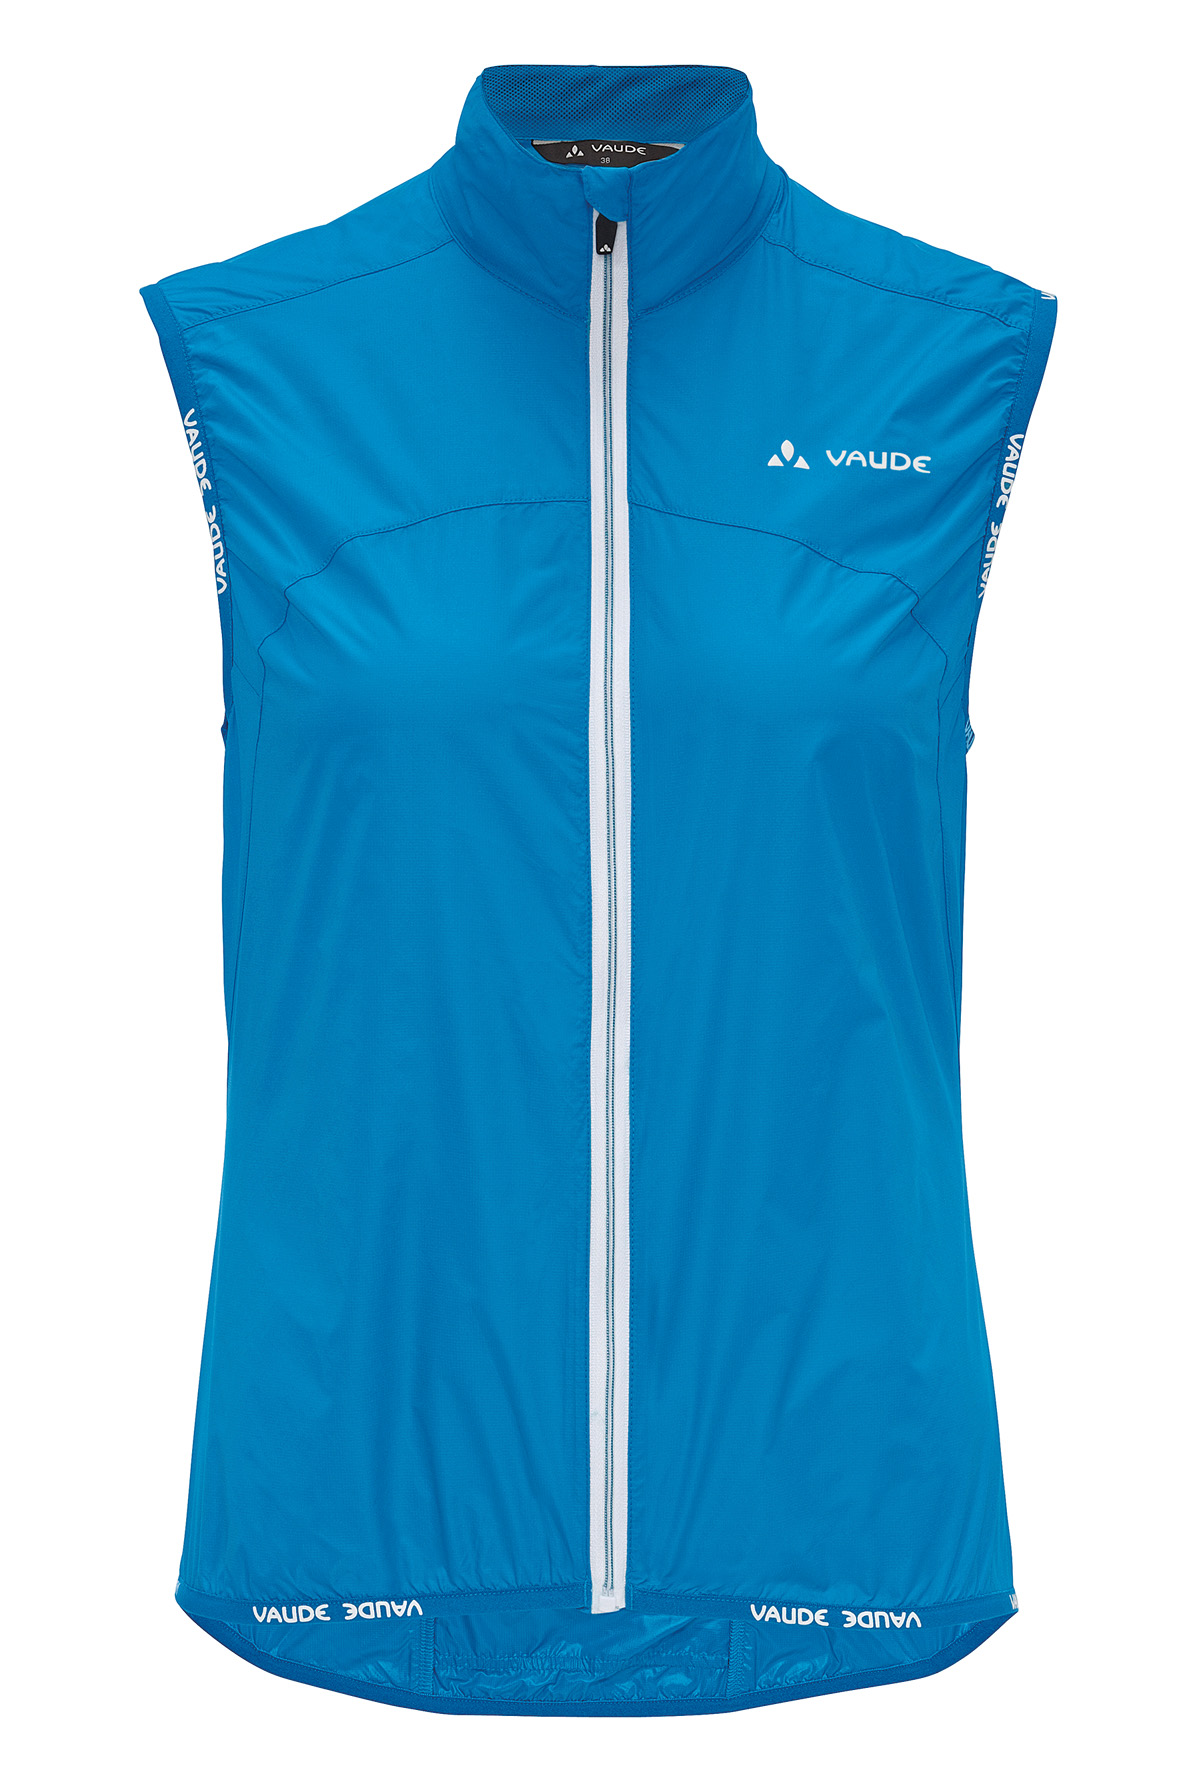 Women´s Air Vest II teal blue Größe 34 - schneider-sports